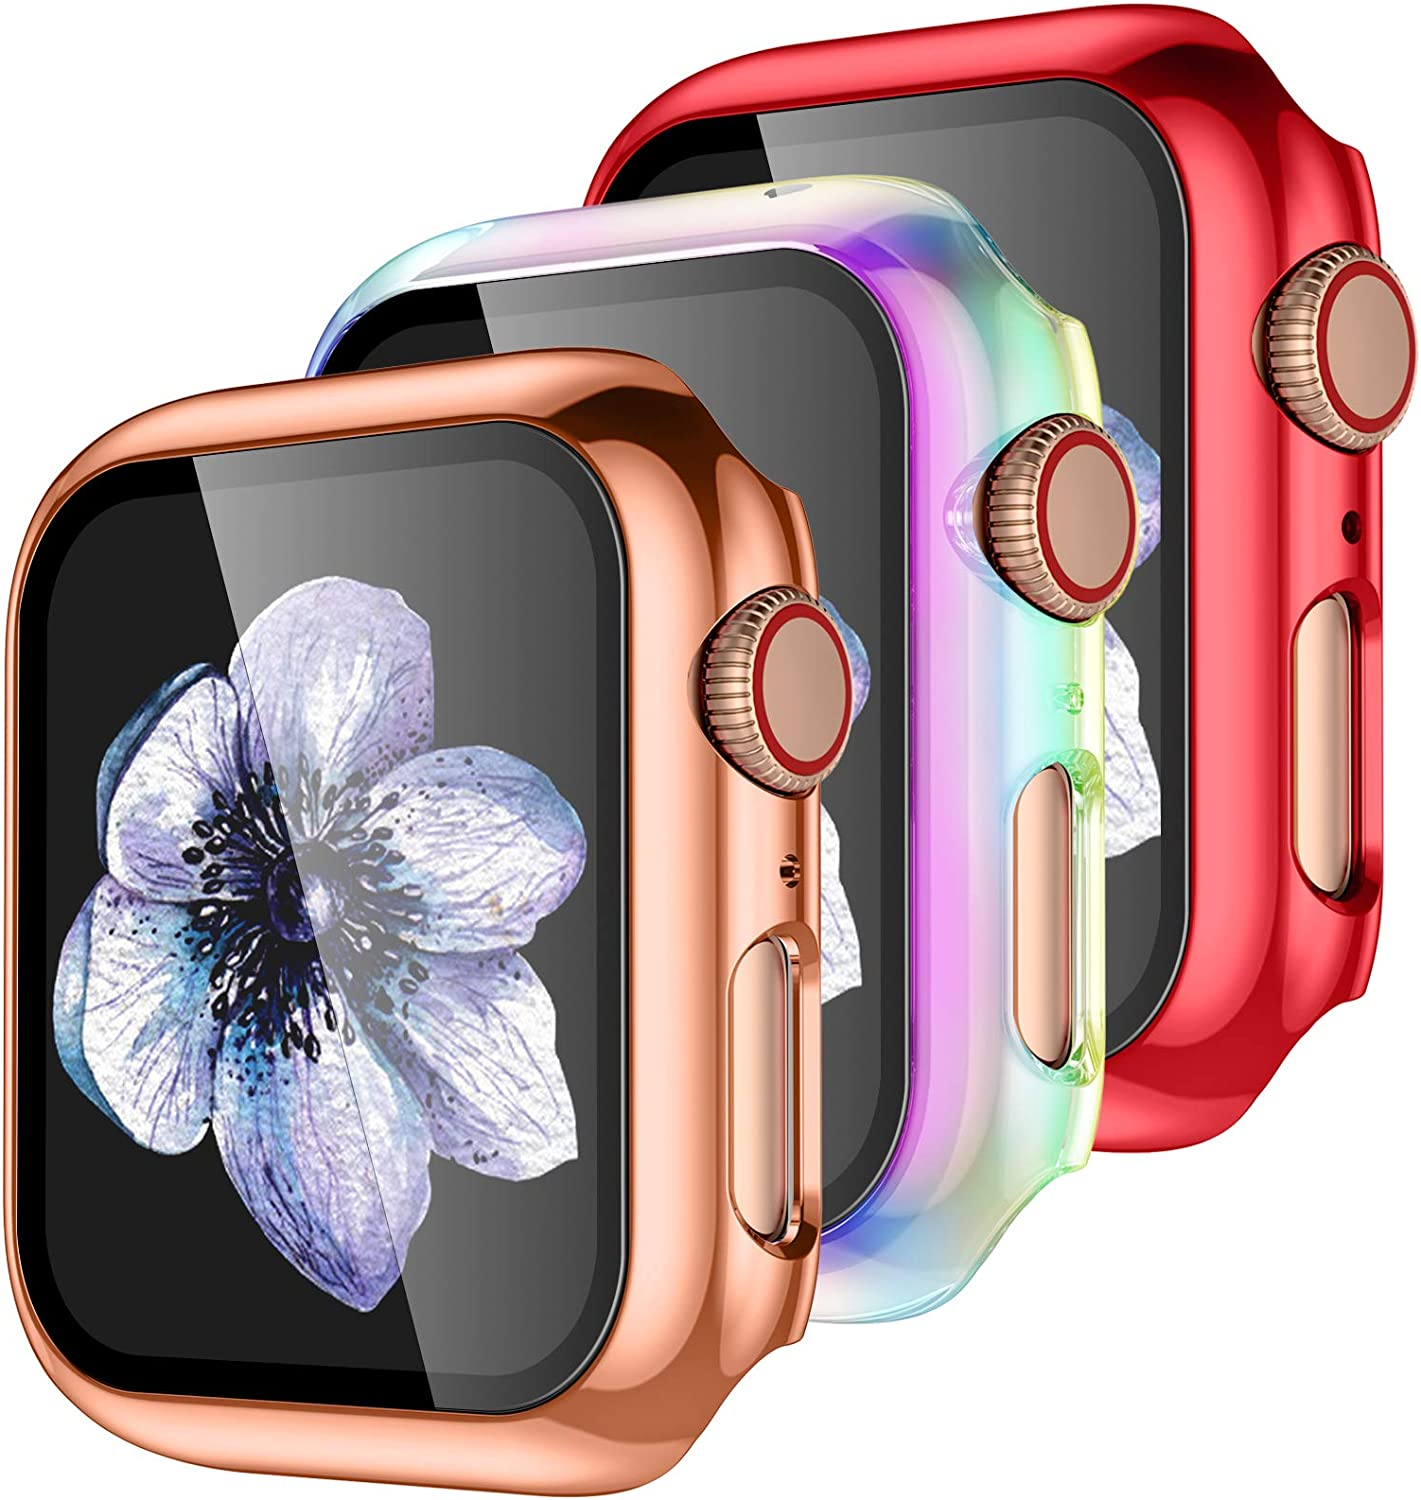 【3 Pack】 Easuny Design for Apple Watch Case 38mm Series 3 2 1 with Built-in Glass Screen Protector - Overall Protective Hard Cover Accessories for iWatch Women Men,Rose-Gold Red Colorful